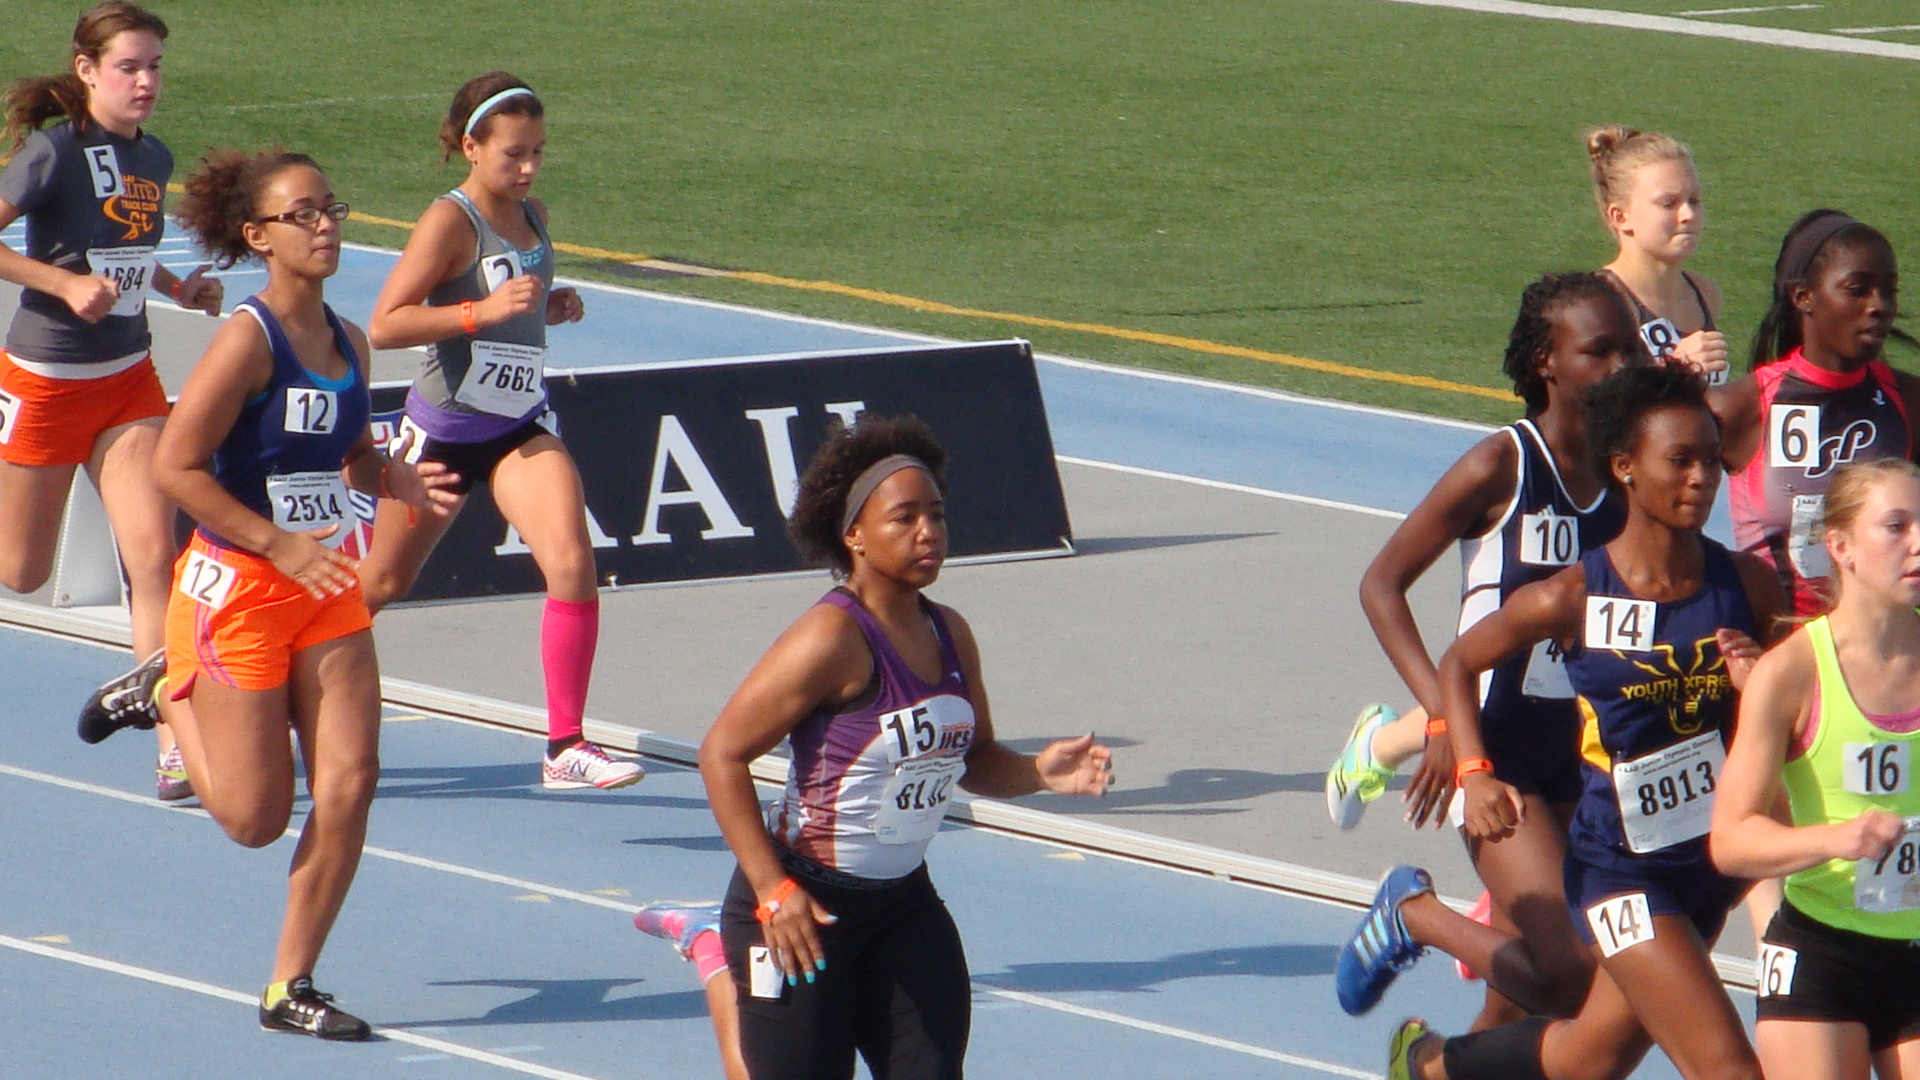 Sarah takes off in the 1500m